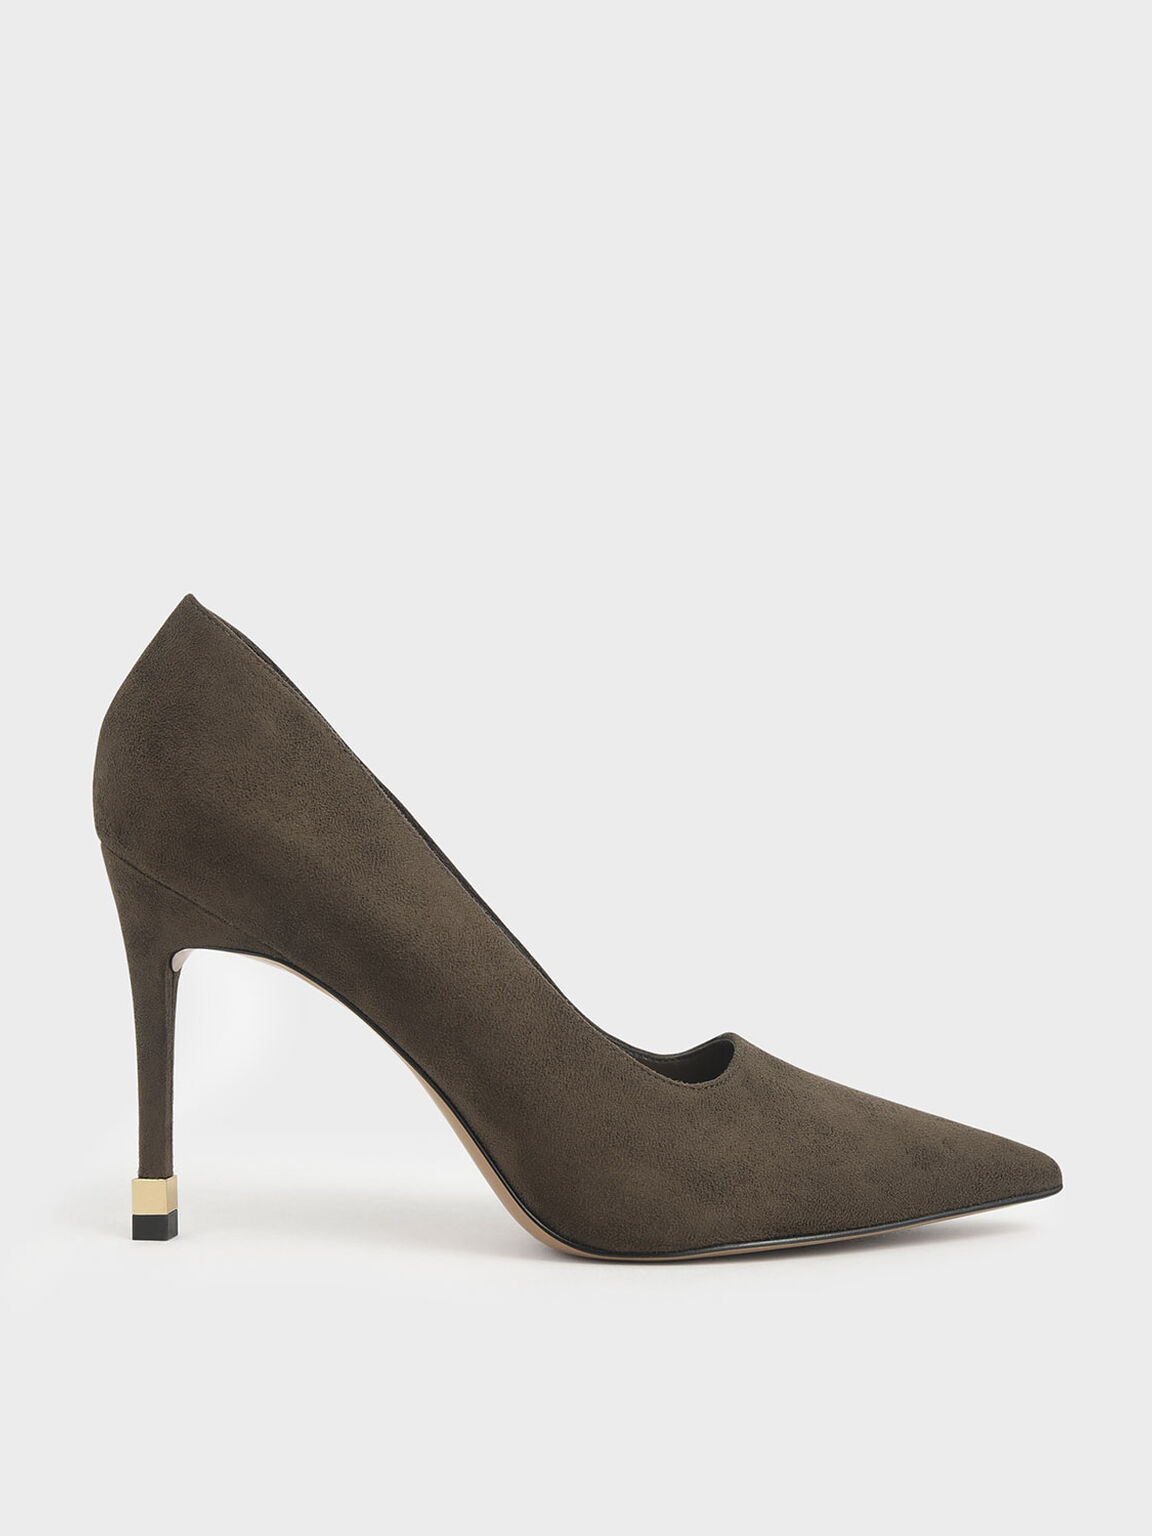 Textured Stiletto Pumps, Olive, hi-res